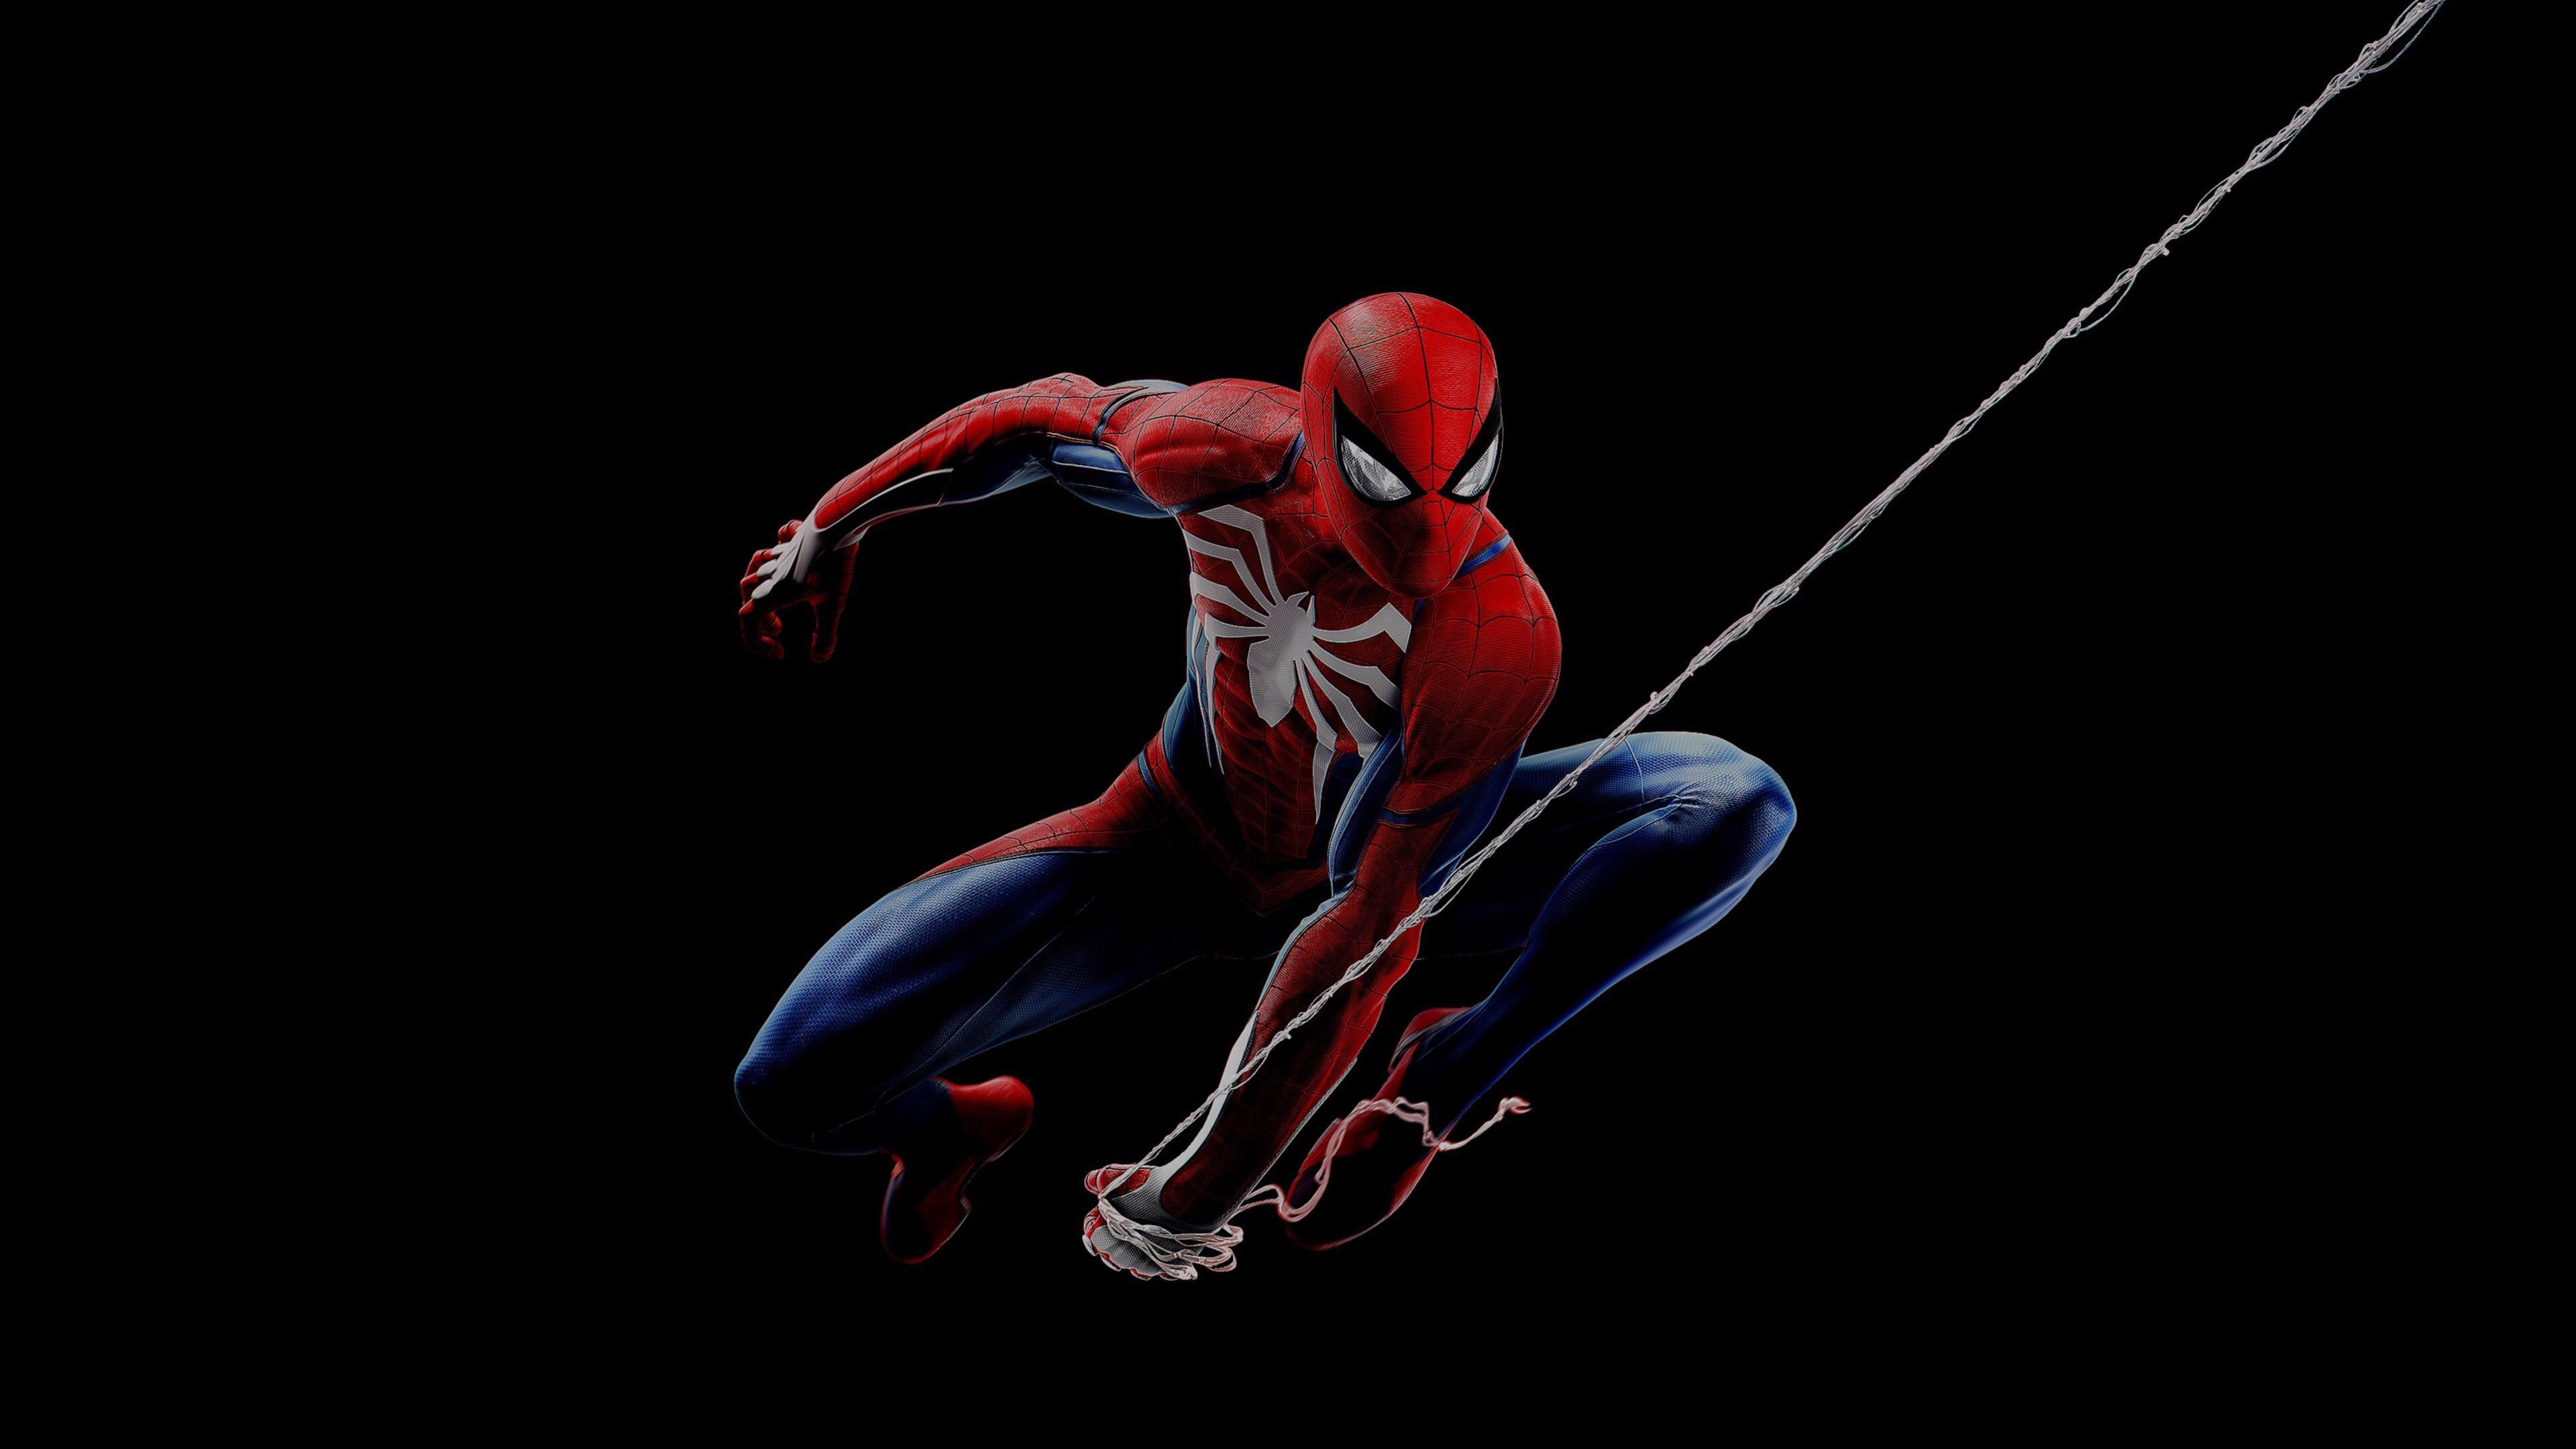 1600x900 Spiderman Ps4 Pro 4k 2018 1600x900 Resolution Hd 4k Wallpapers Images Backgrounds Photos And Pictures